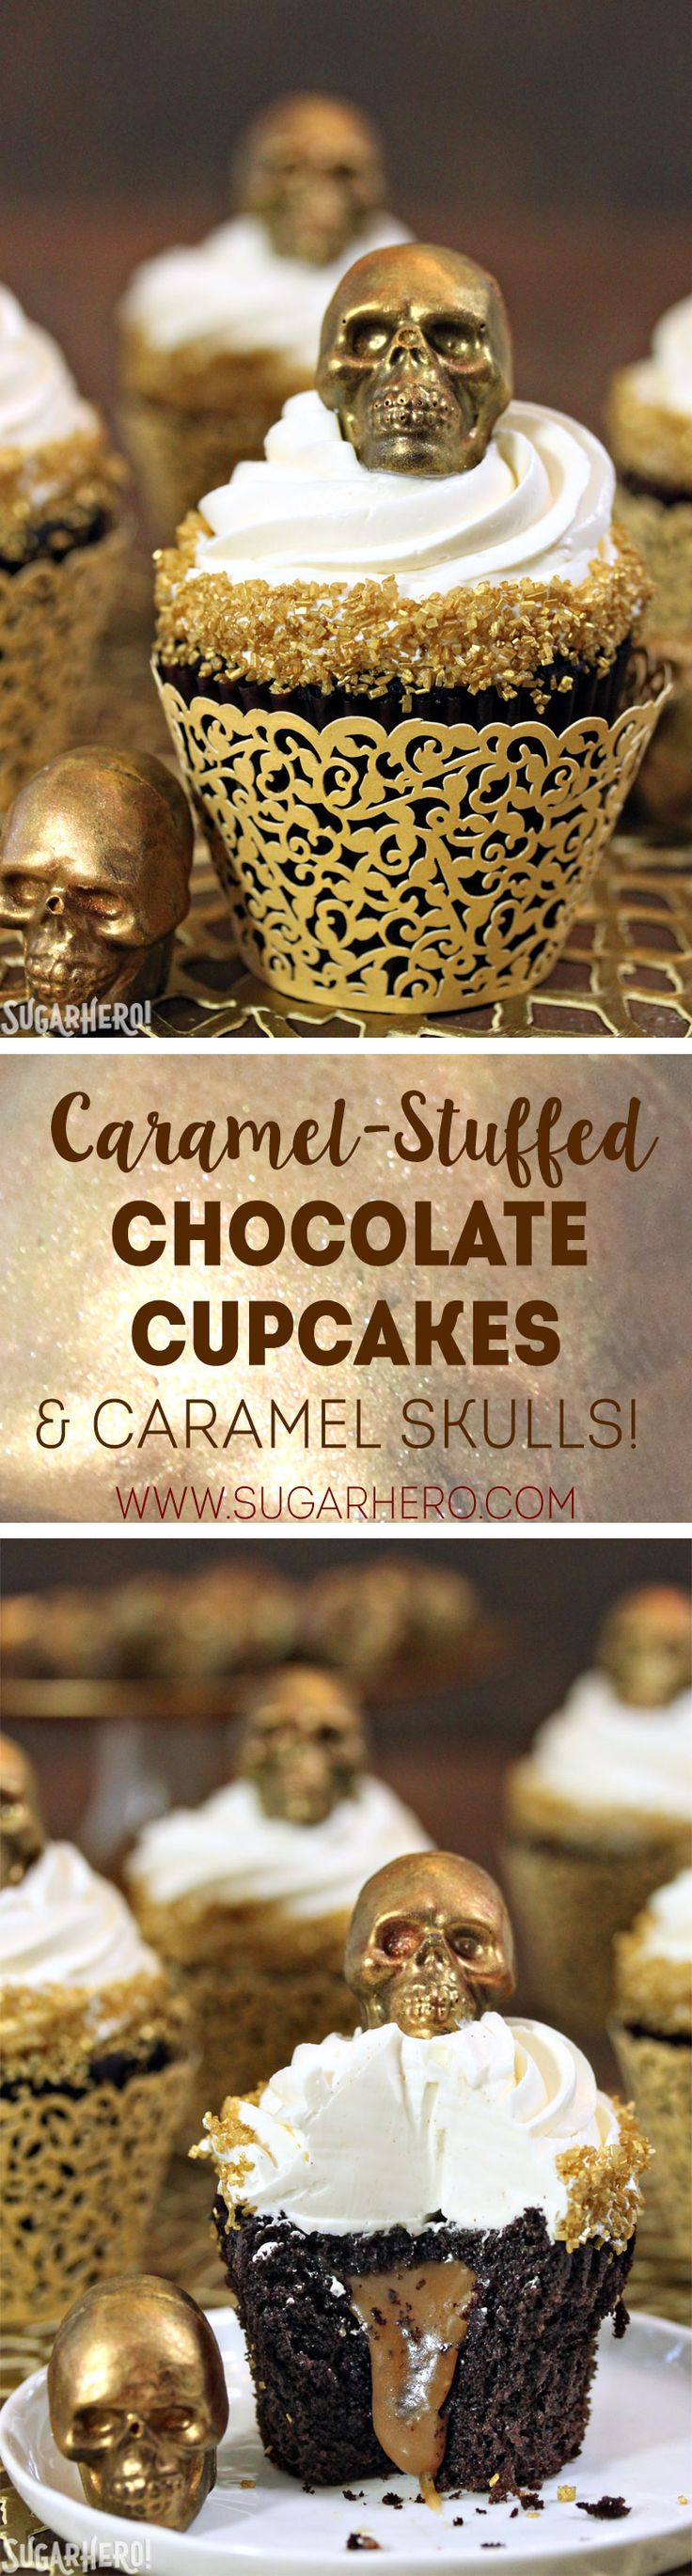 These Caramel-Stuffed Chocolate Cupcakes are topped with Gold Chocolate Caramel Skulls   From SugarHero.com